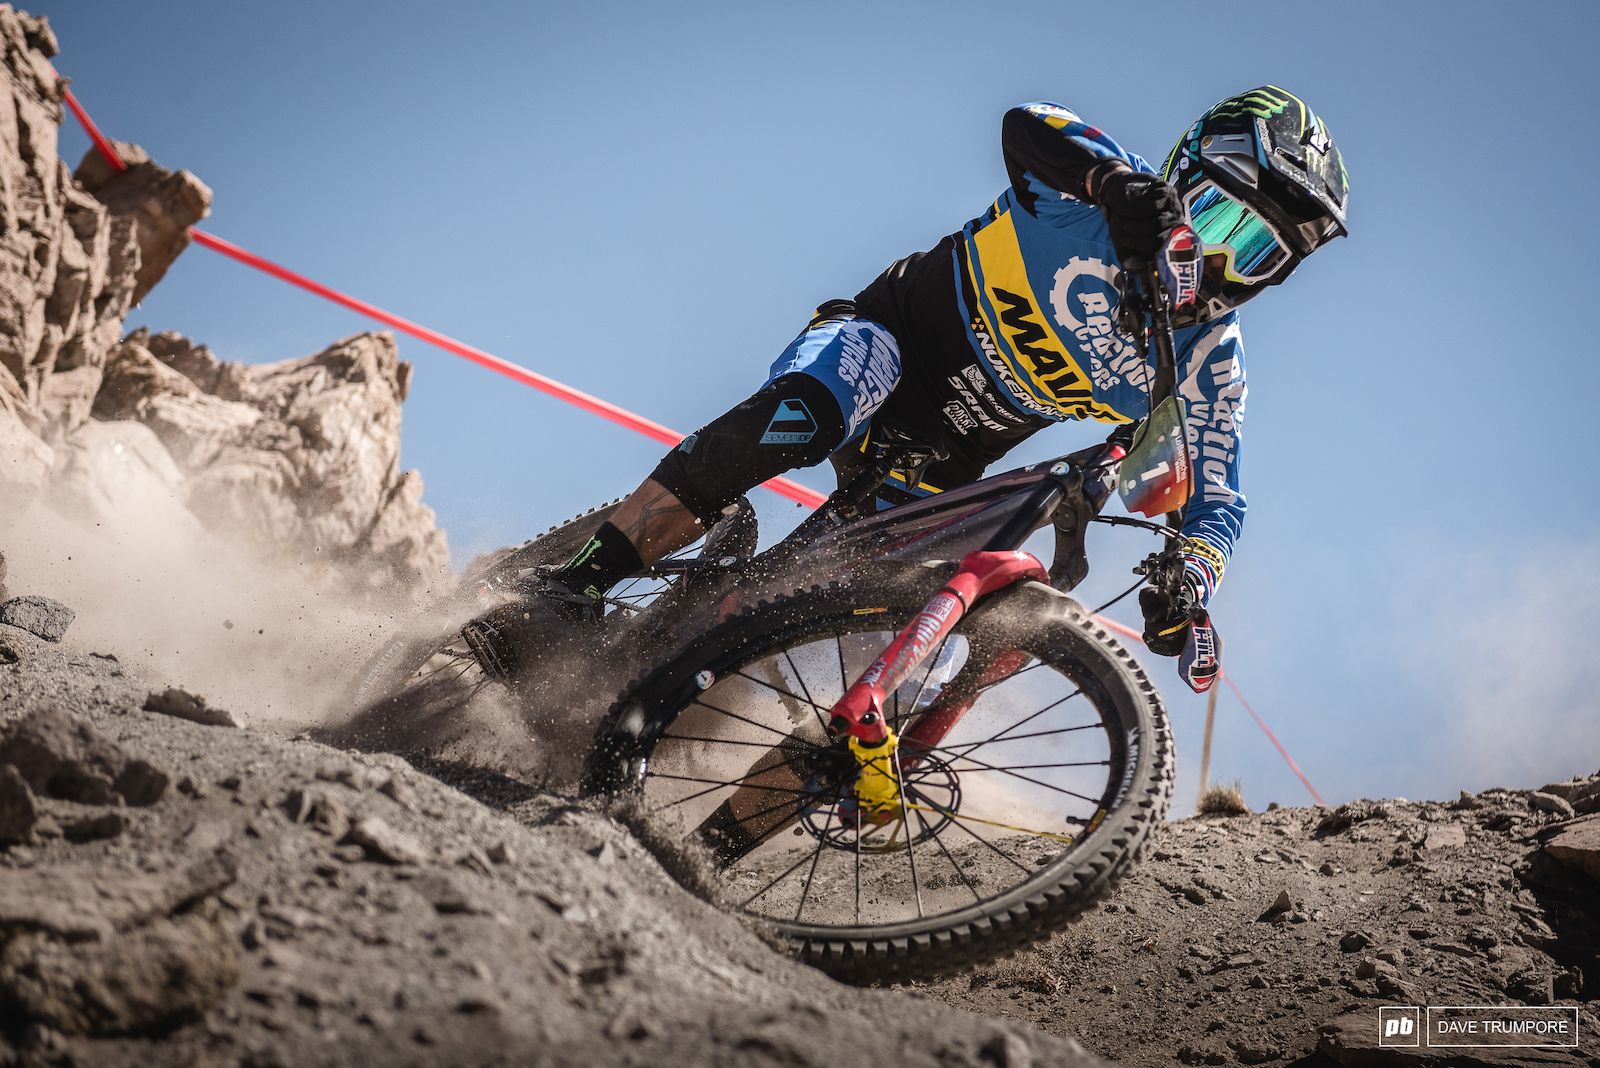 Picking up where he left off Sam Hill is on top of the leader board after day 1.